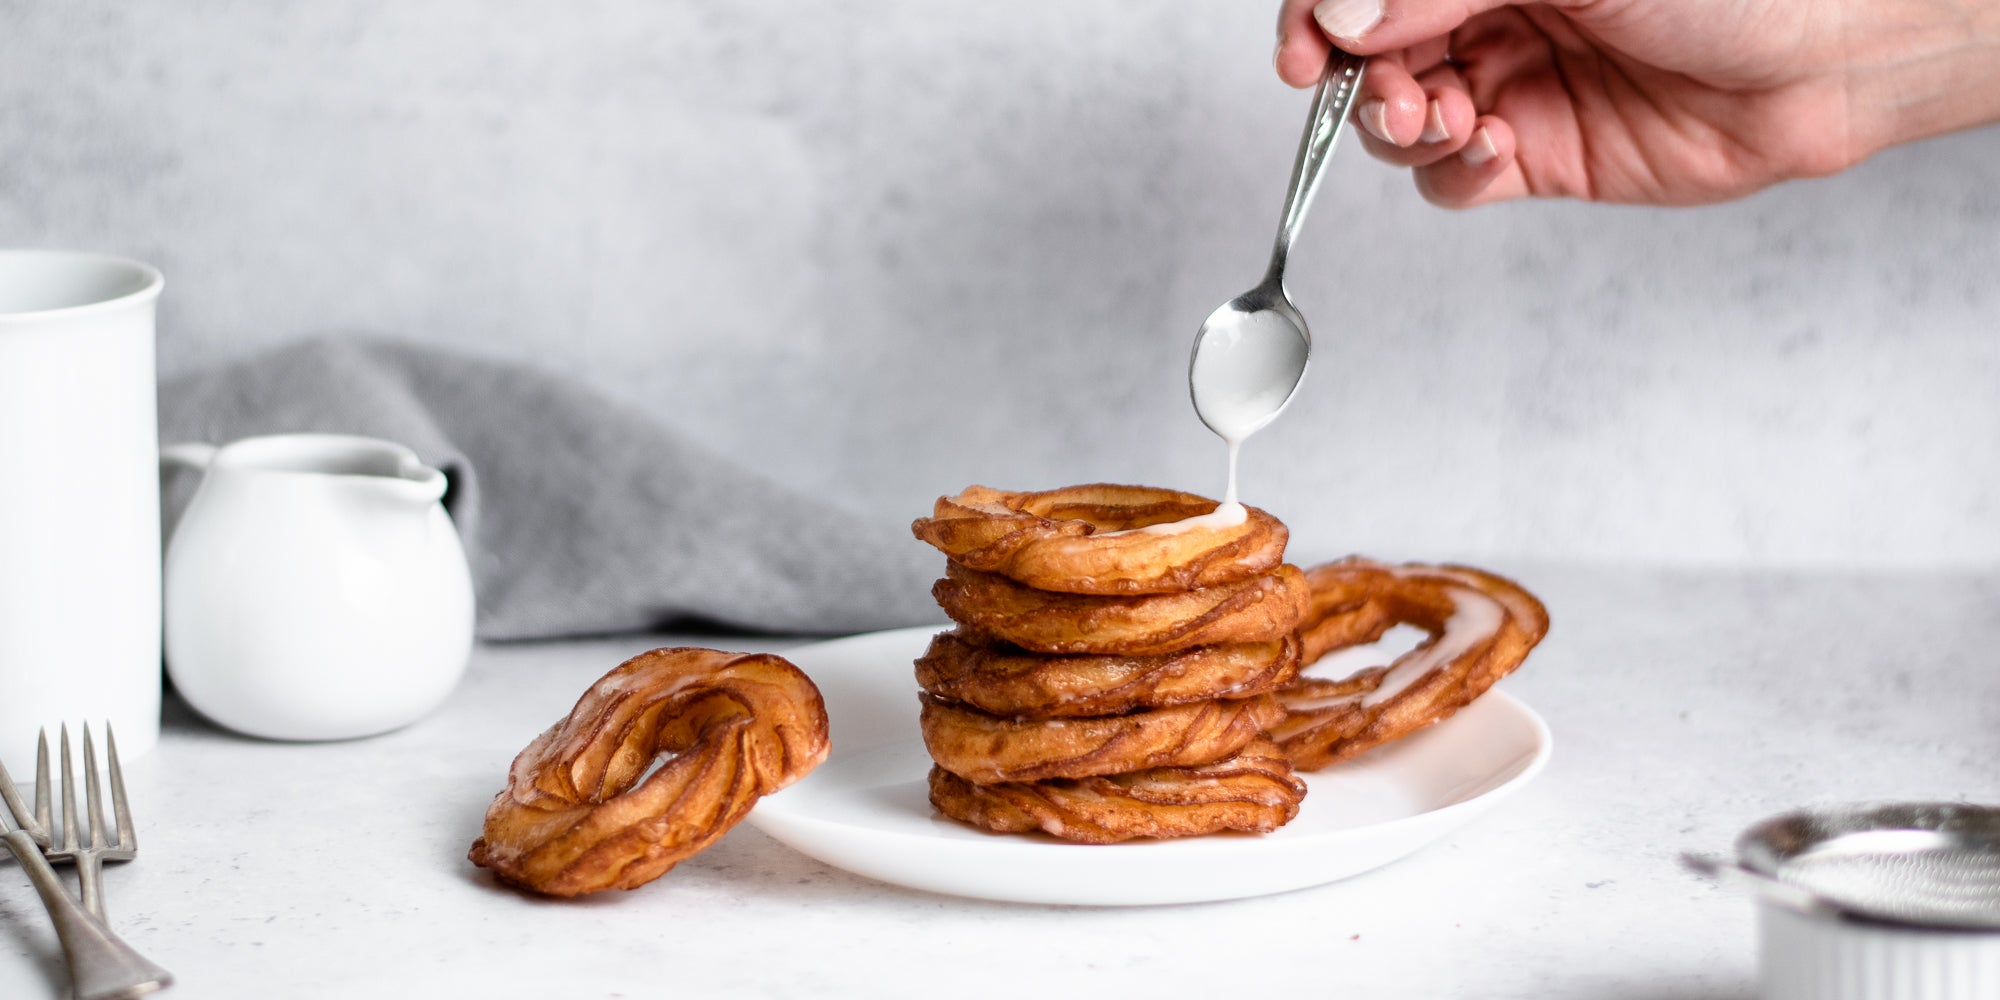 Stack of Apple Cider Crullers being drizzled with Icing with a hand holding a spoon